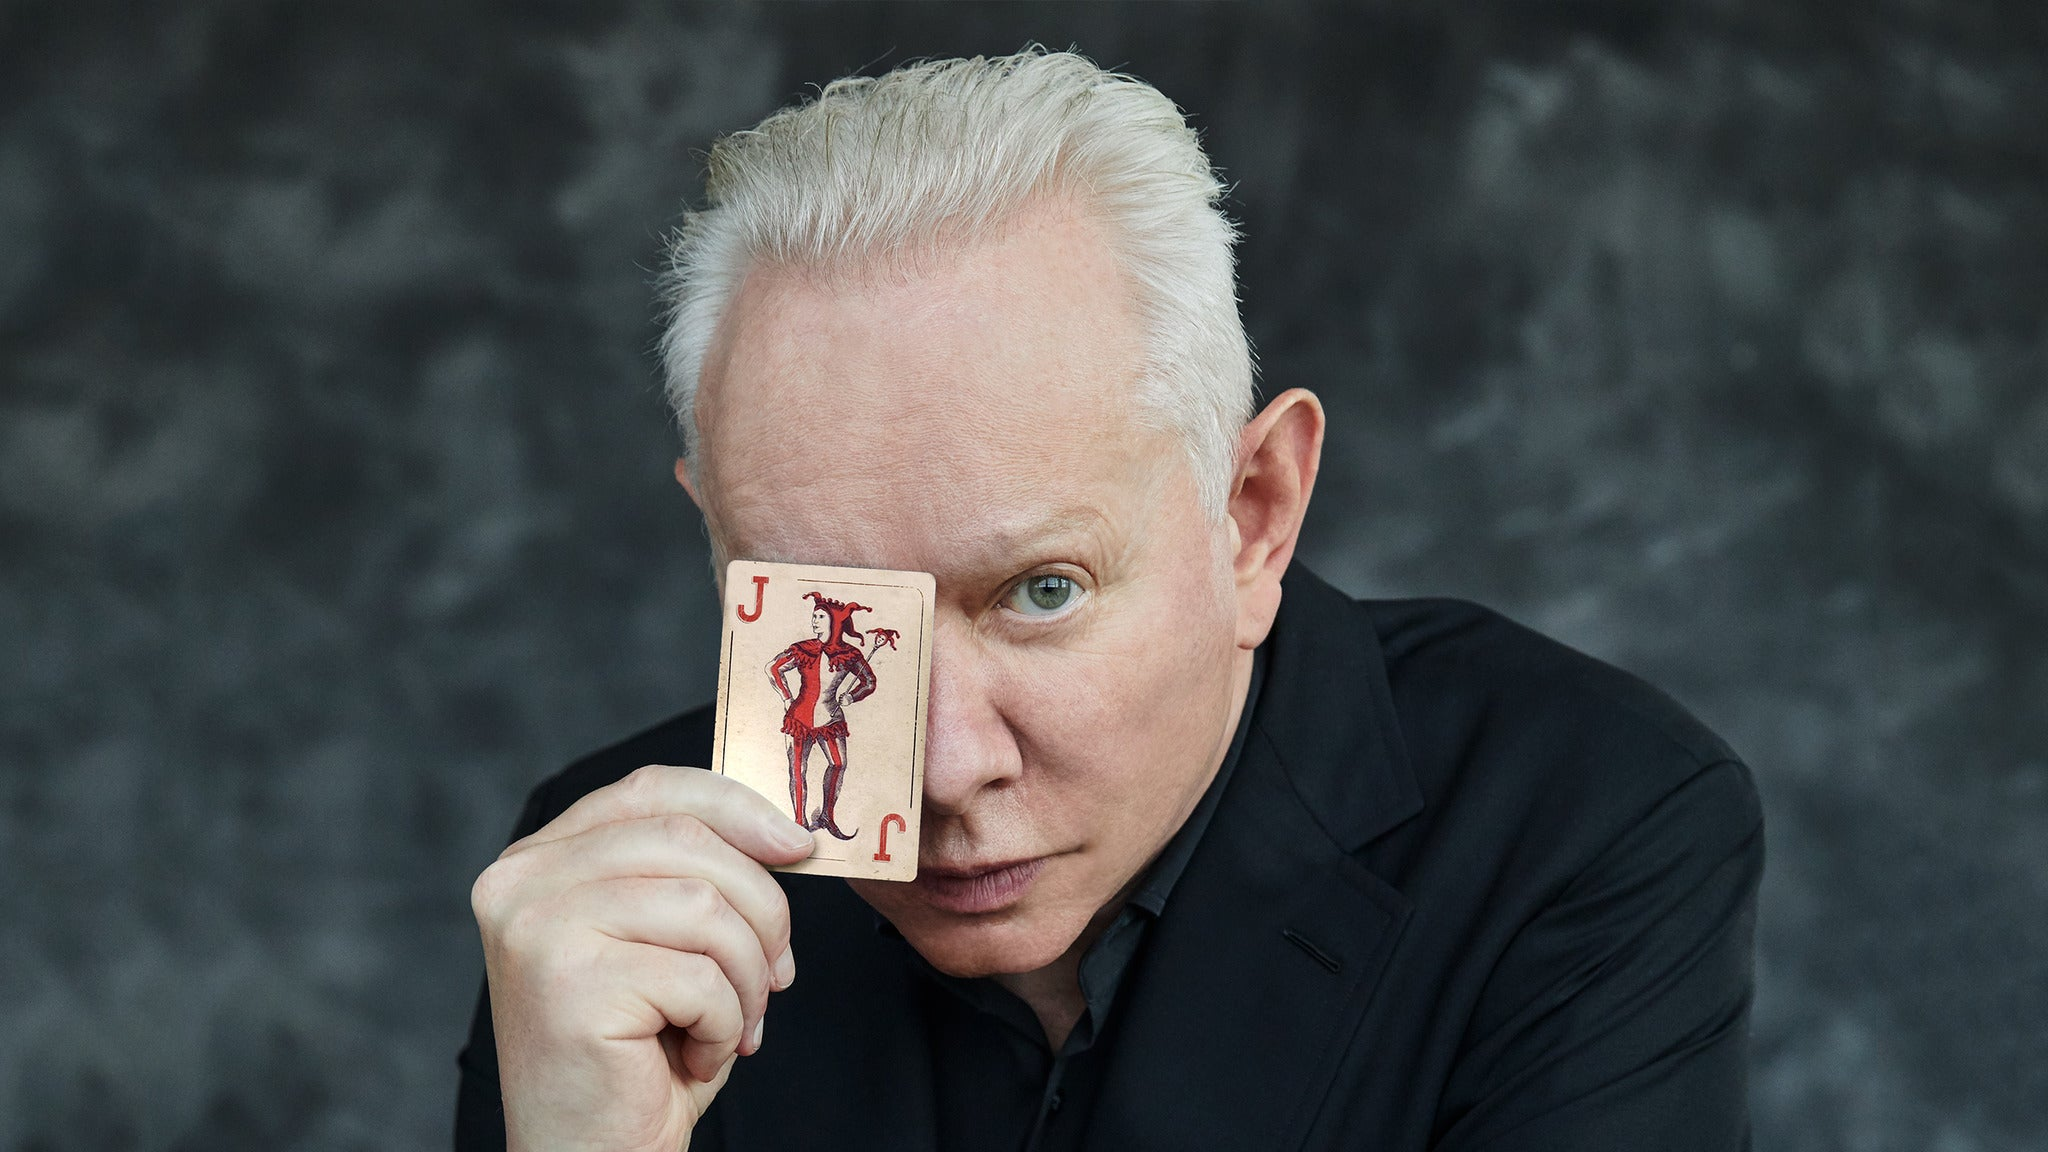 Joe Jackson at Shreveport Municipal Memorial Auditorium